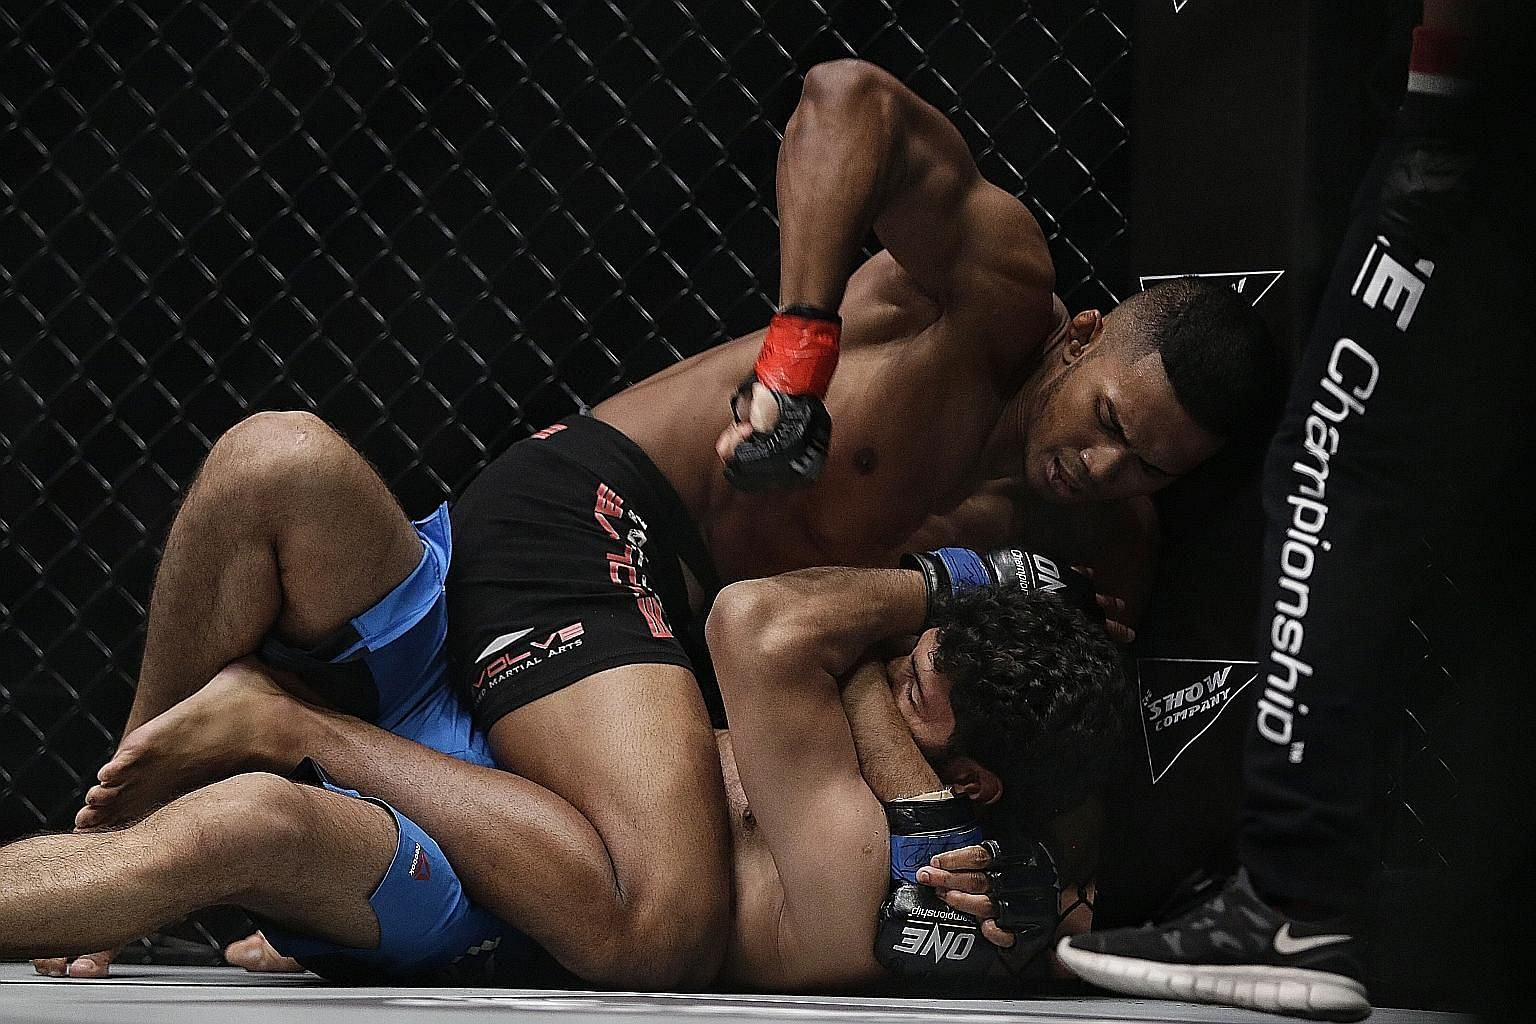 Singapore's mixed martial arts fighter Amir Khan pummelling India's Rajinder Singh Meena on his way to scoring a technical knockout win last night at One Championship's Dynasty of Heroes event held at the Singapore Indoor Stadium. Khan, 22, represent